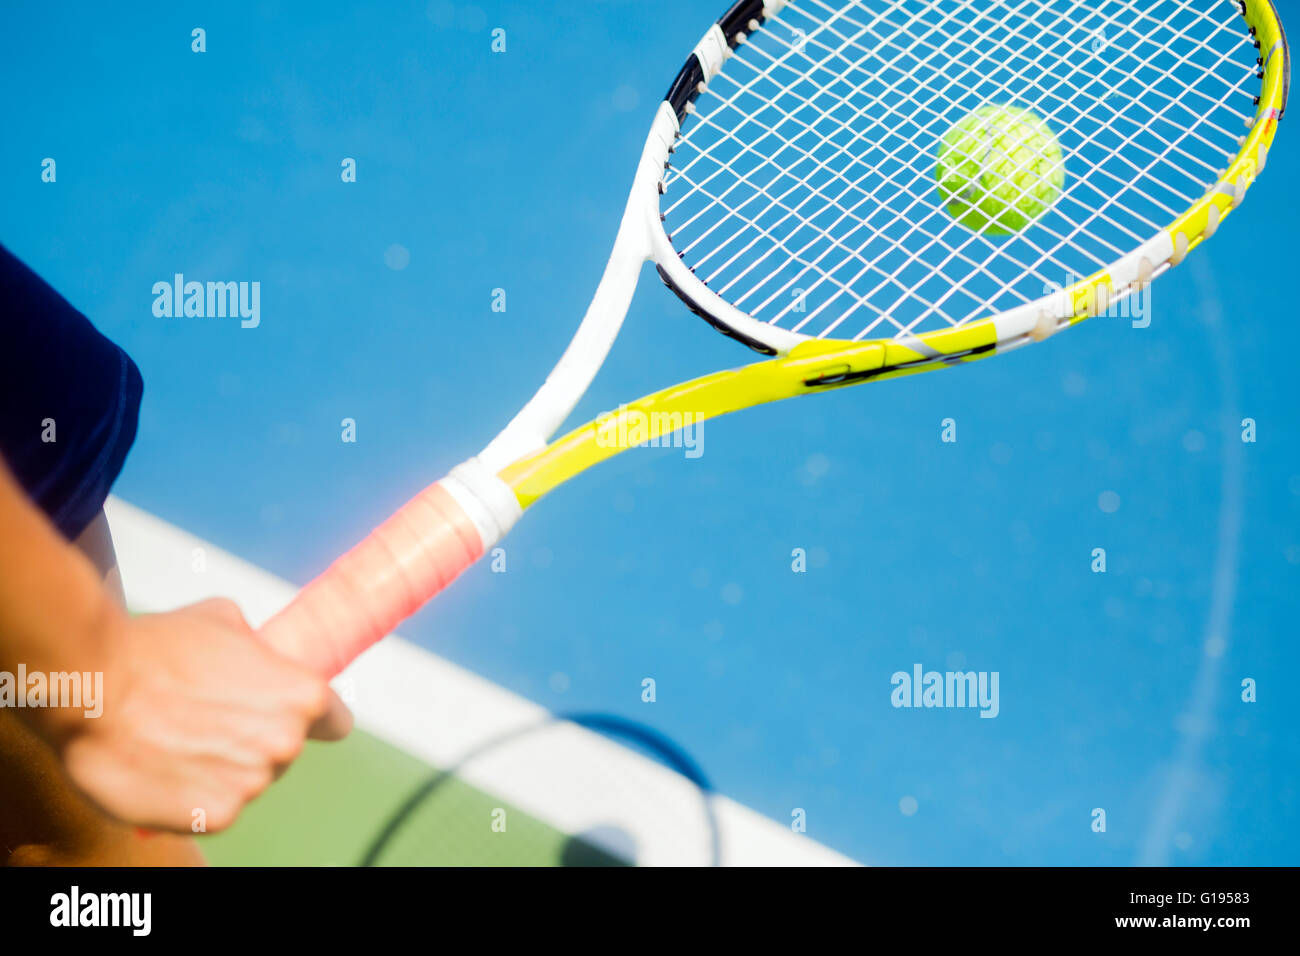 Closeup of a player holding the racquet and preparing for the serv at the baseline - Stock Image